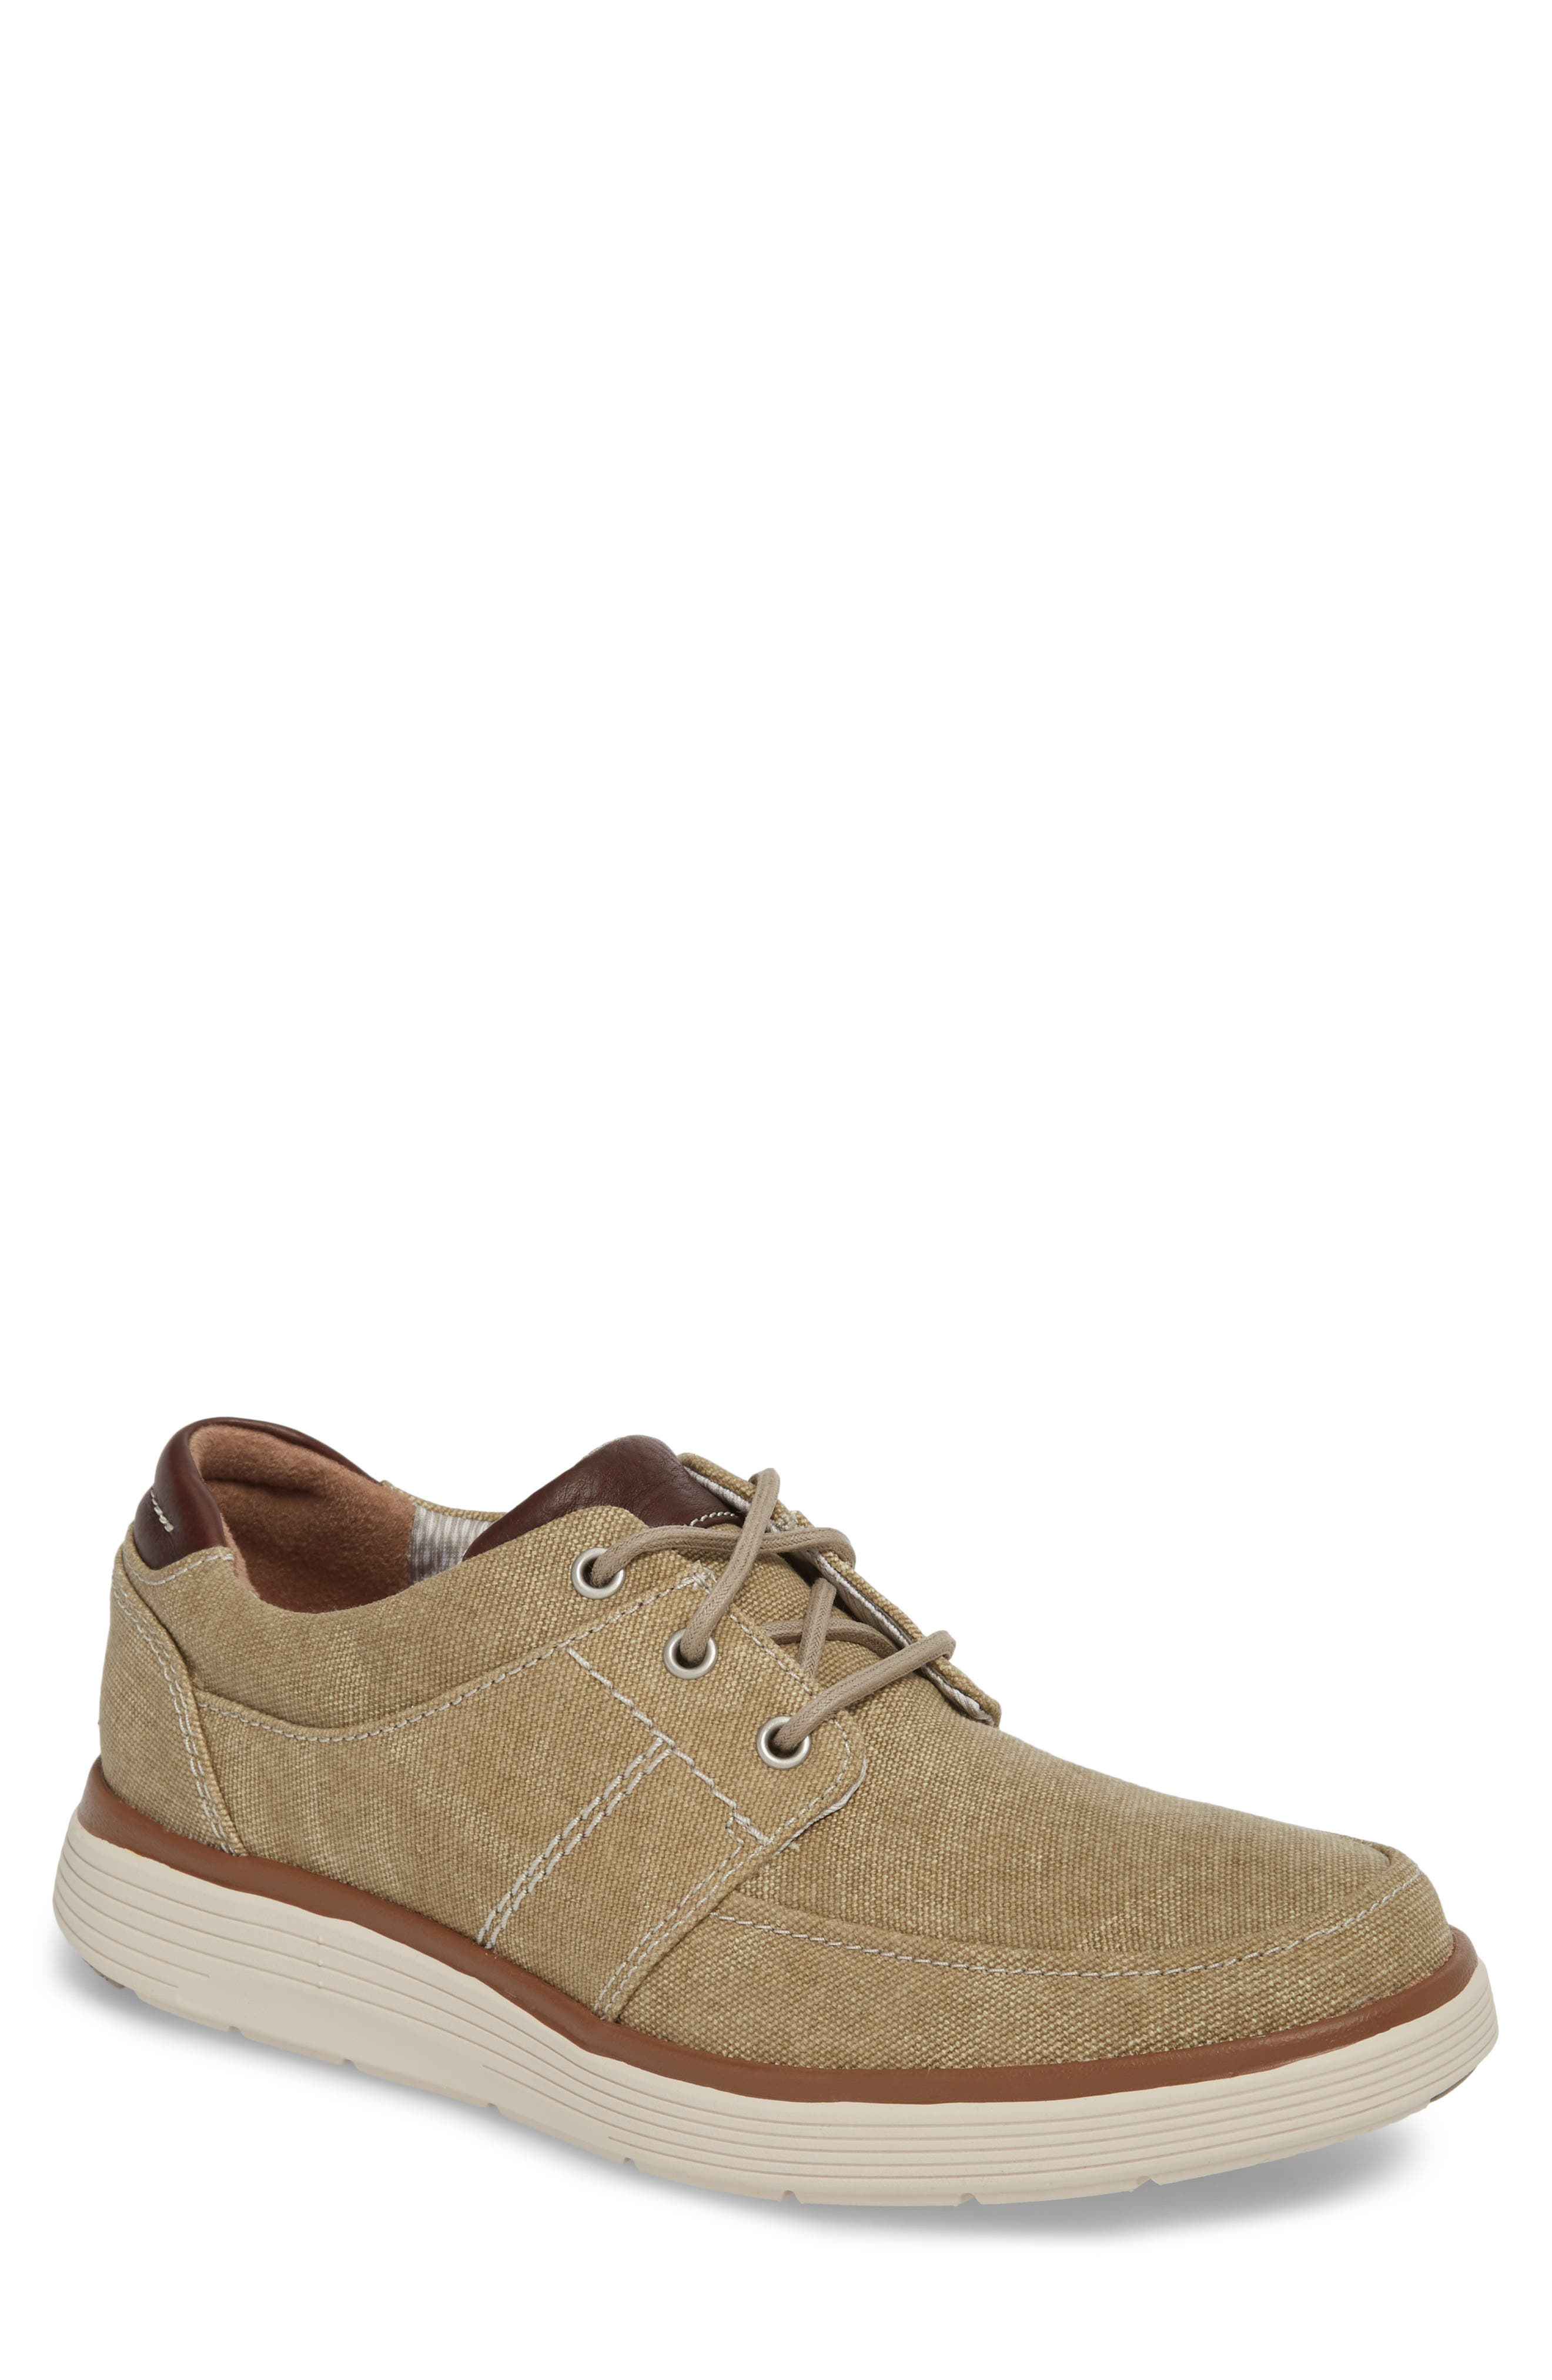 Clarks<sup>®</sup> Unabode Form Sneaker,                         Main,                         color, Sand Fabric